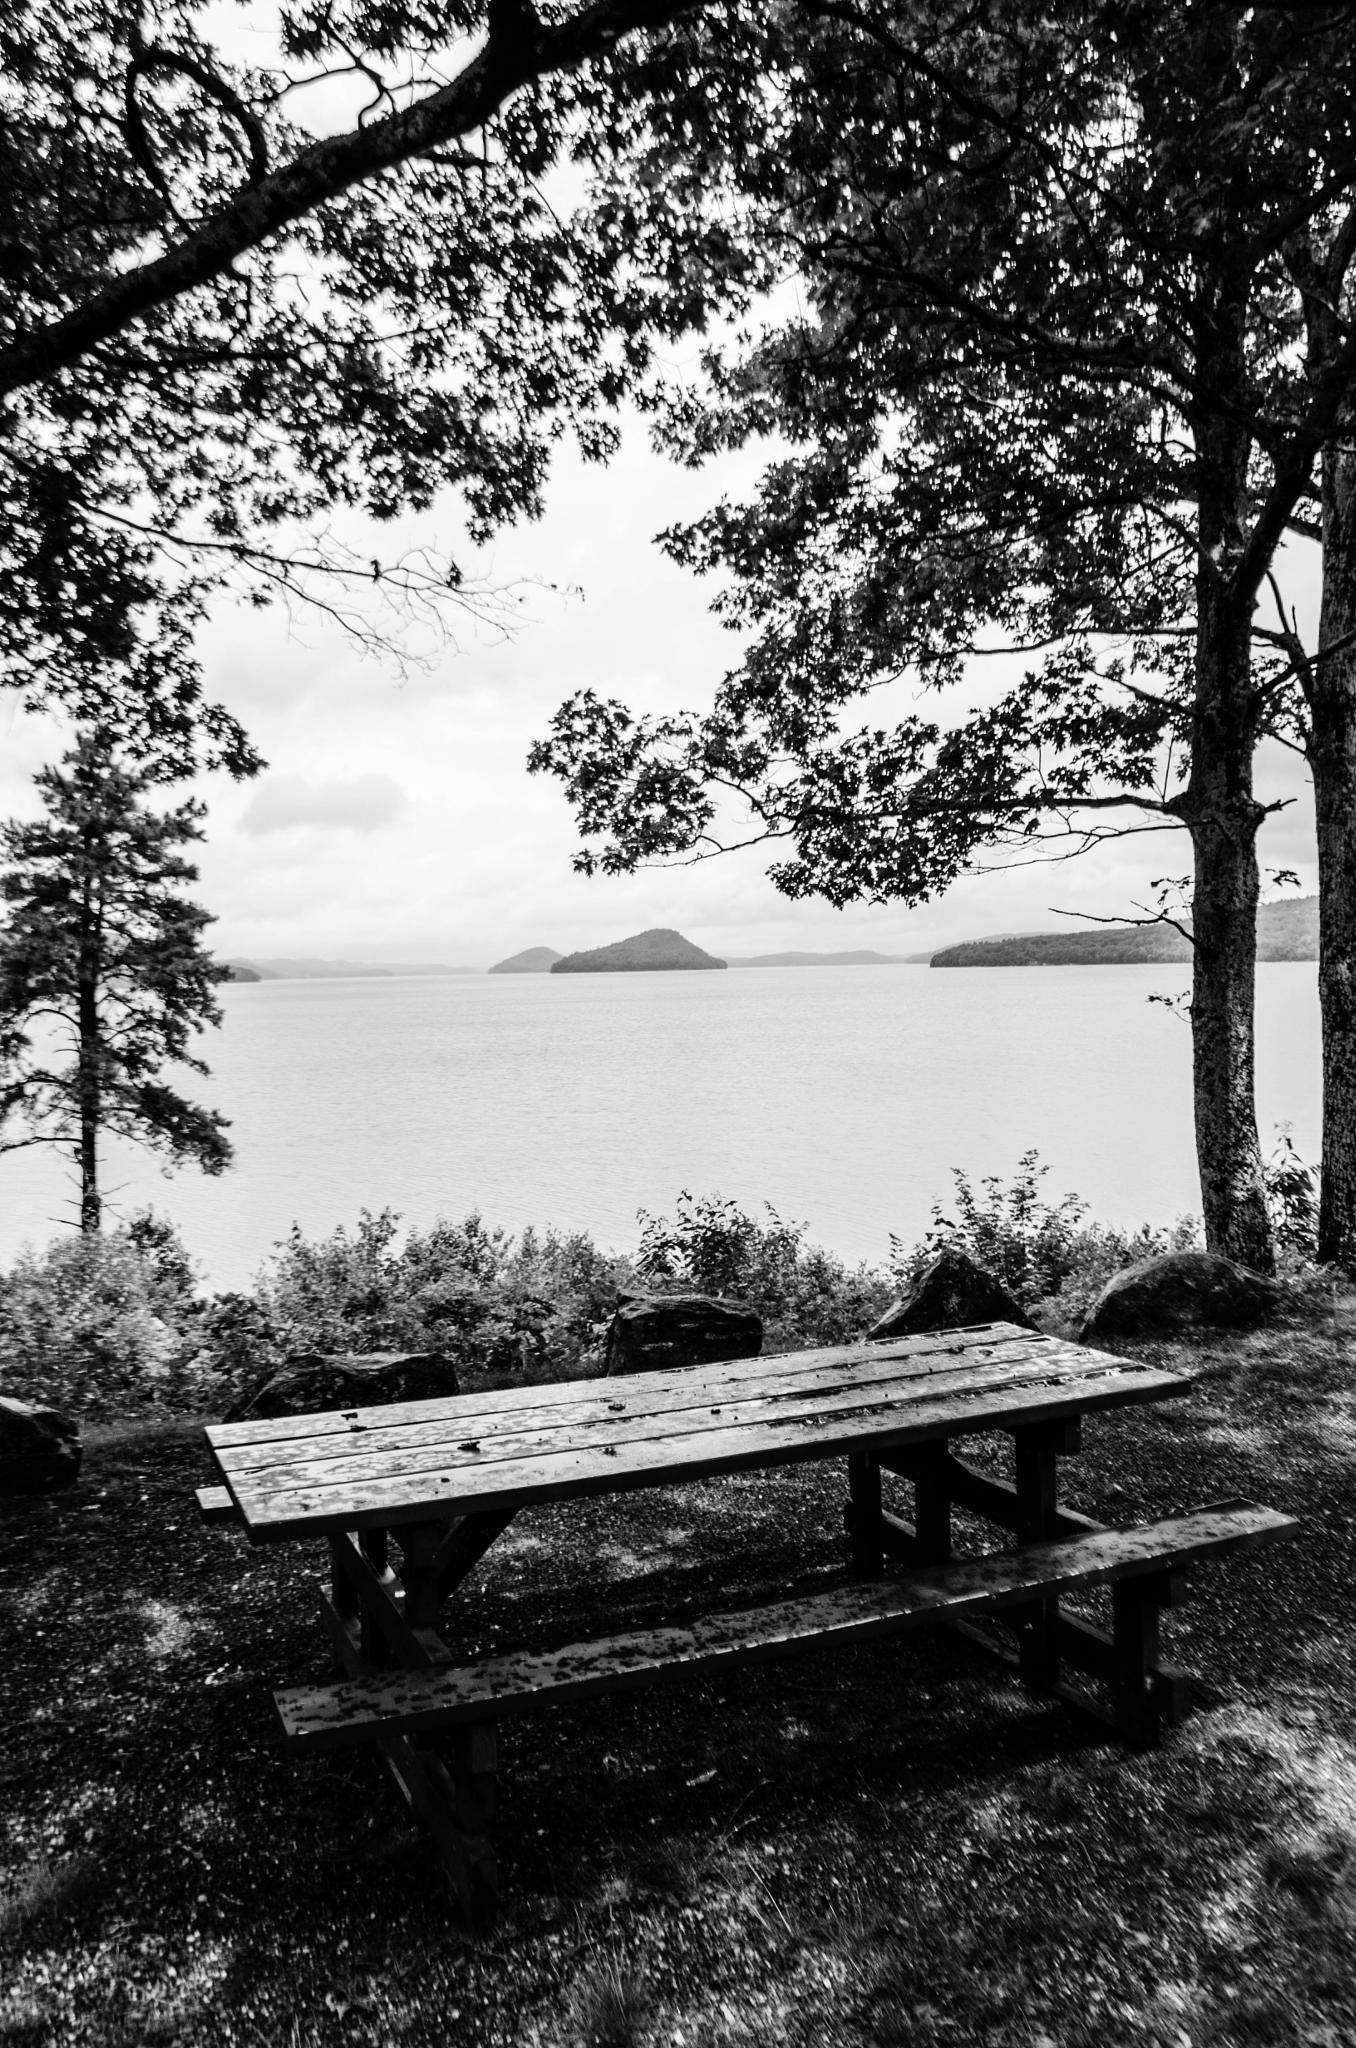 Picnic Table with a View by davidpinter